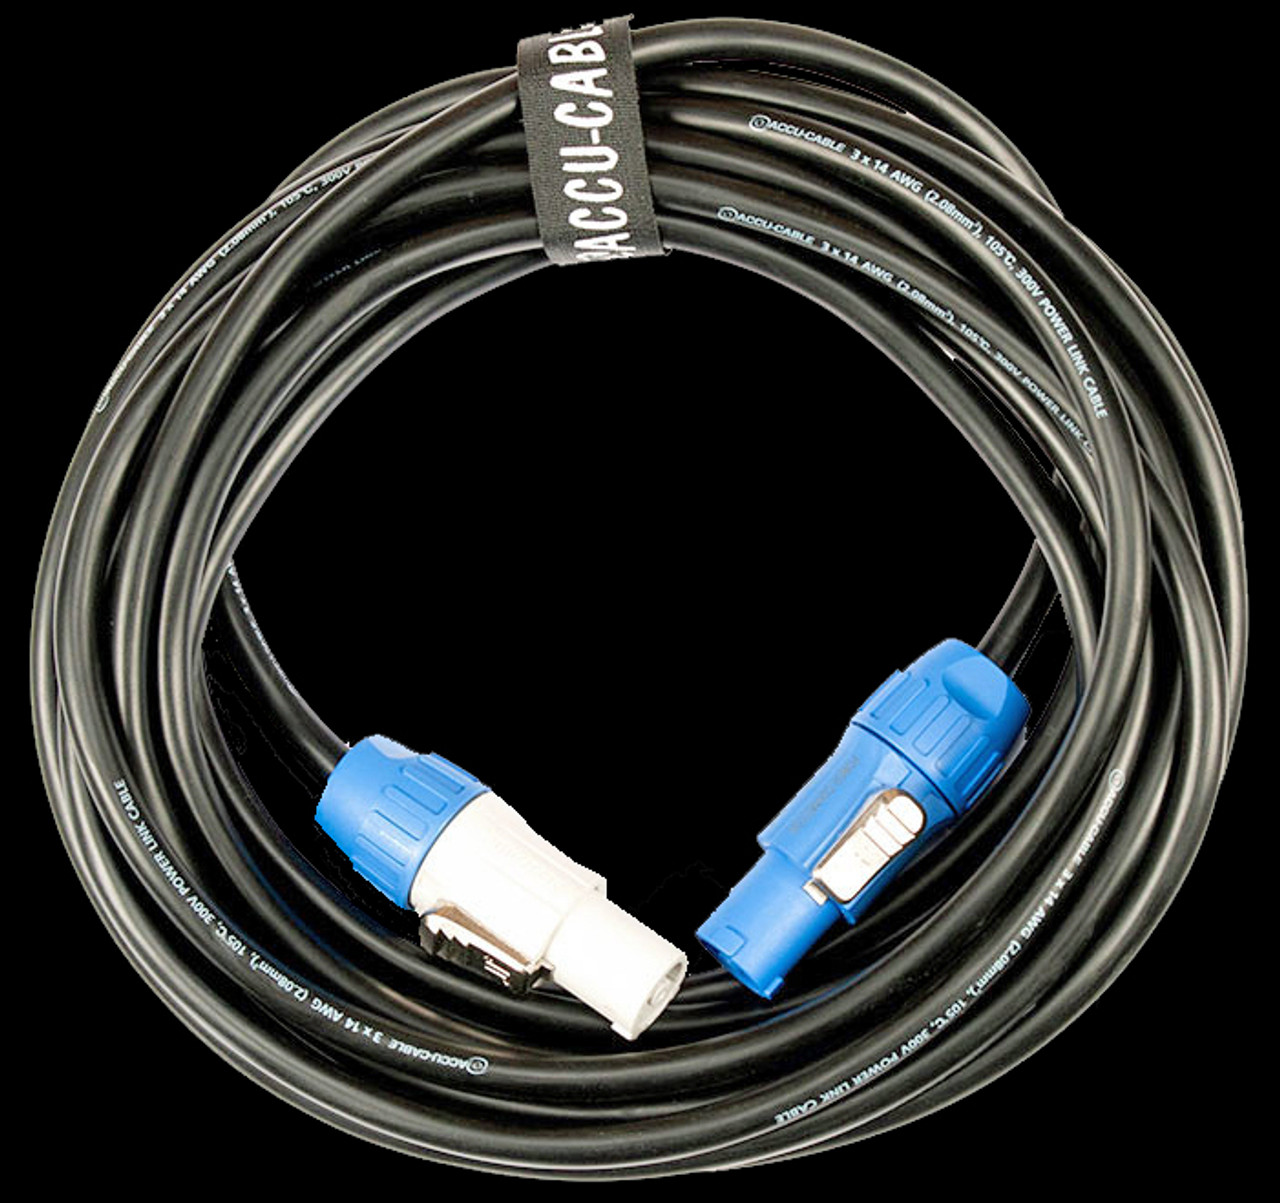 Accu Cable 25' Power Link Cable / SPLC25